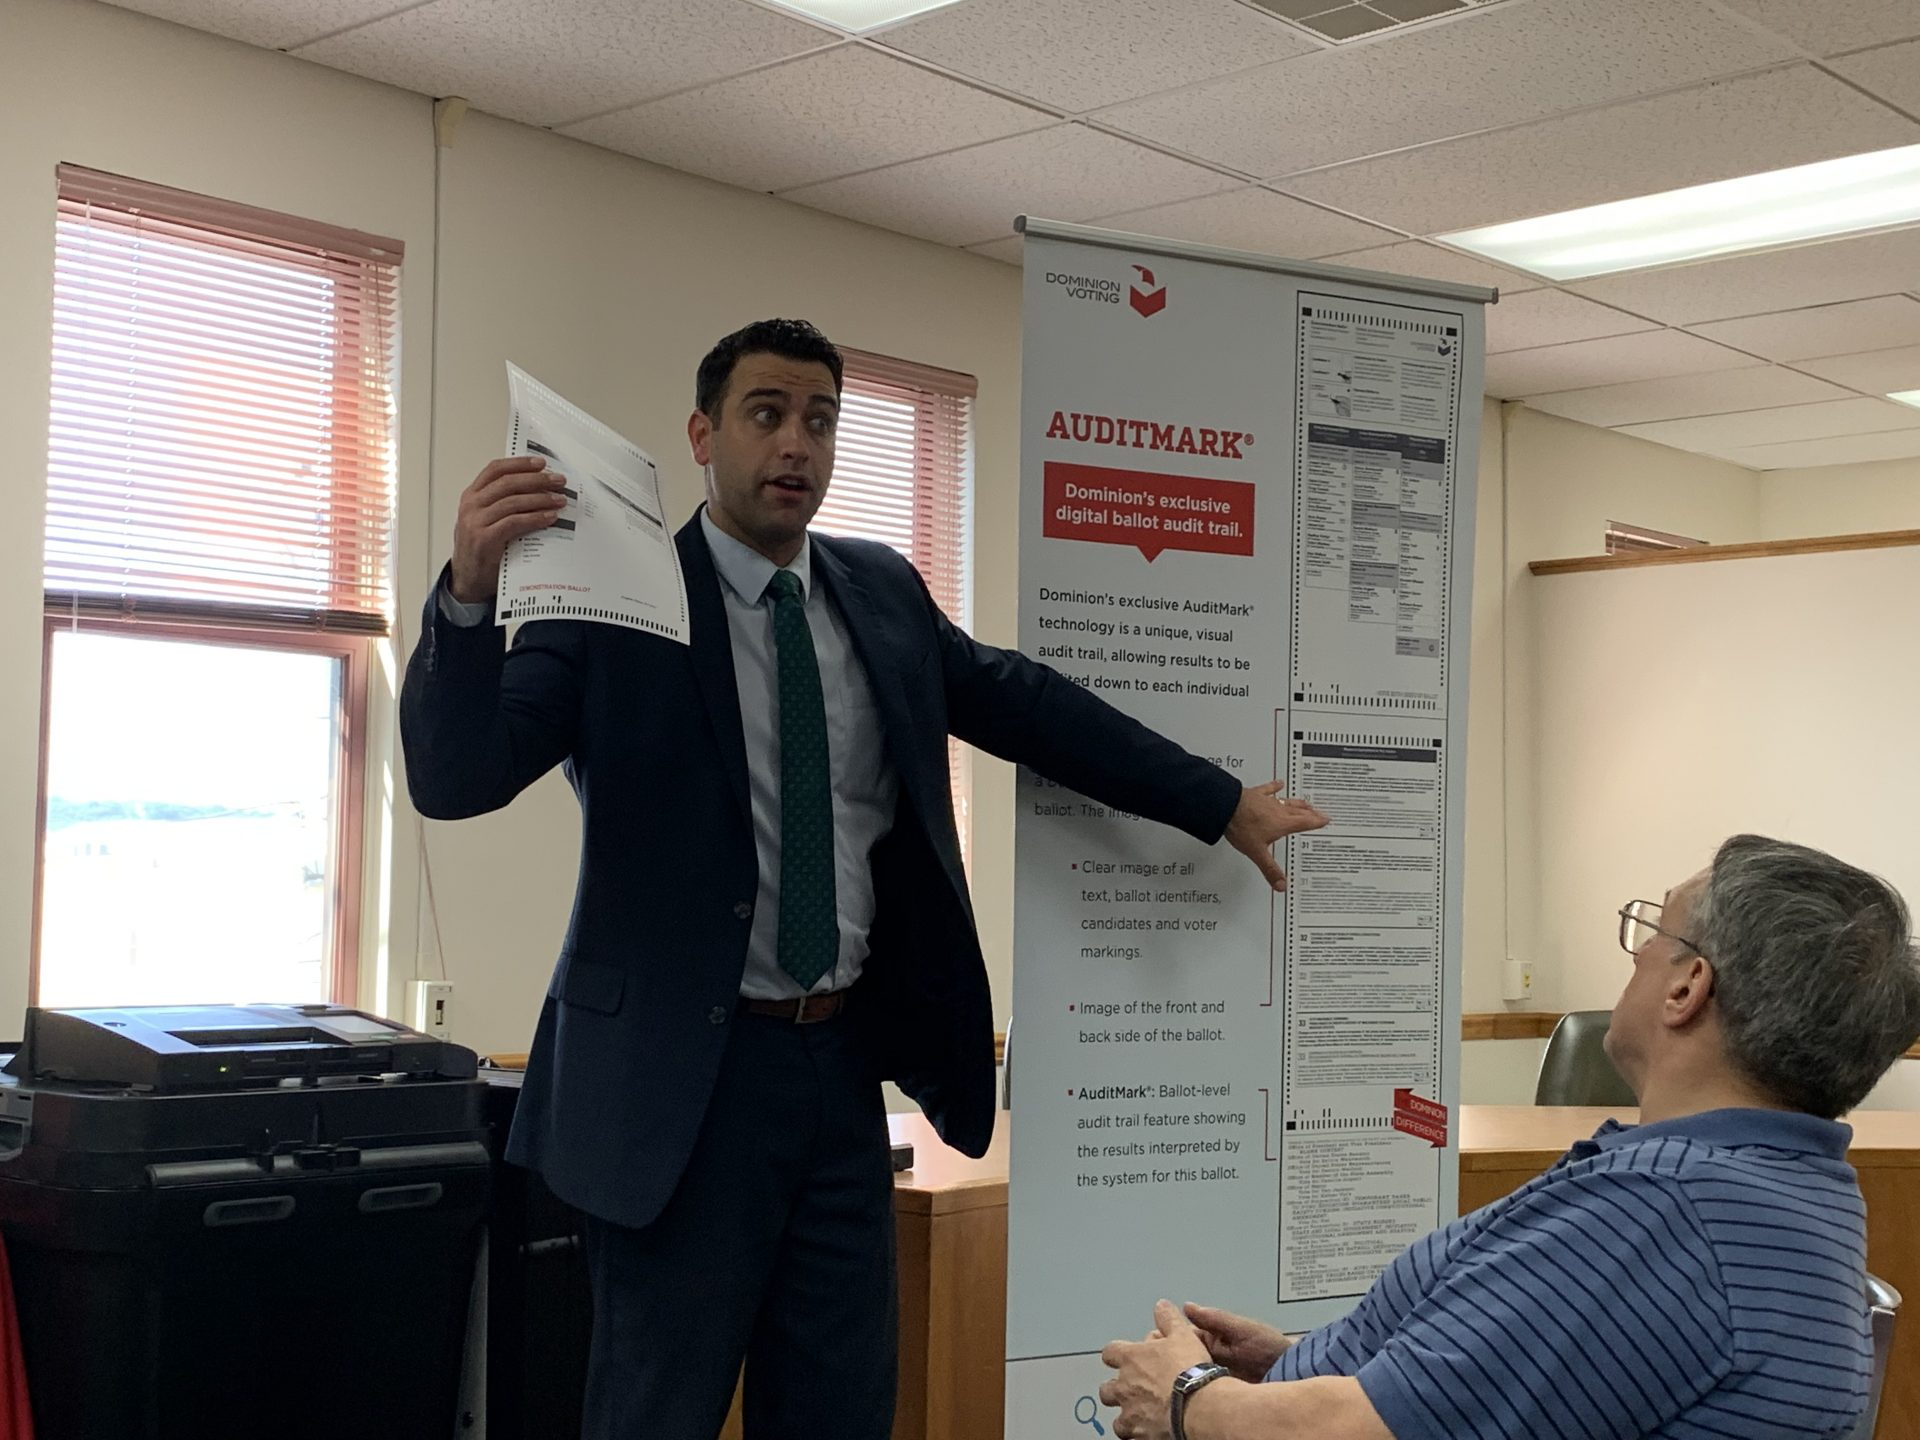 John Hastings, regional sales manager with Dominion Voting Systems, explains how the company's auditing system works to officials in Columbia County June 26, 2019. (Emily Previti, PA Post)